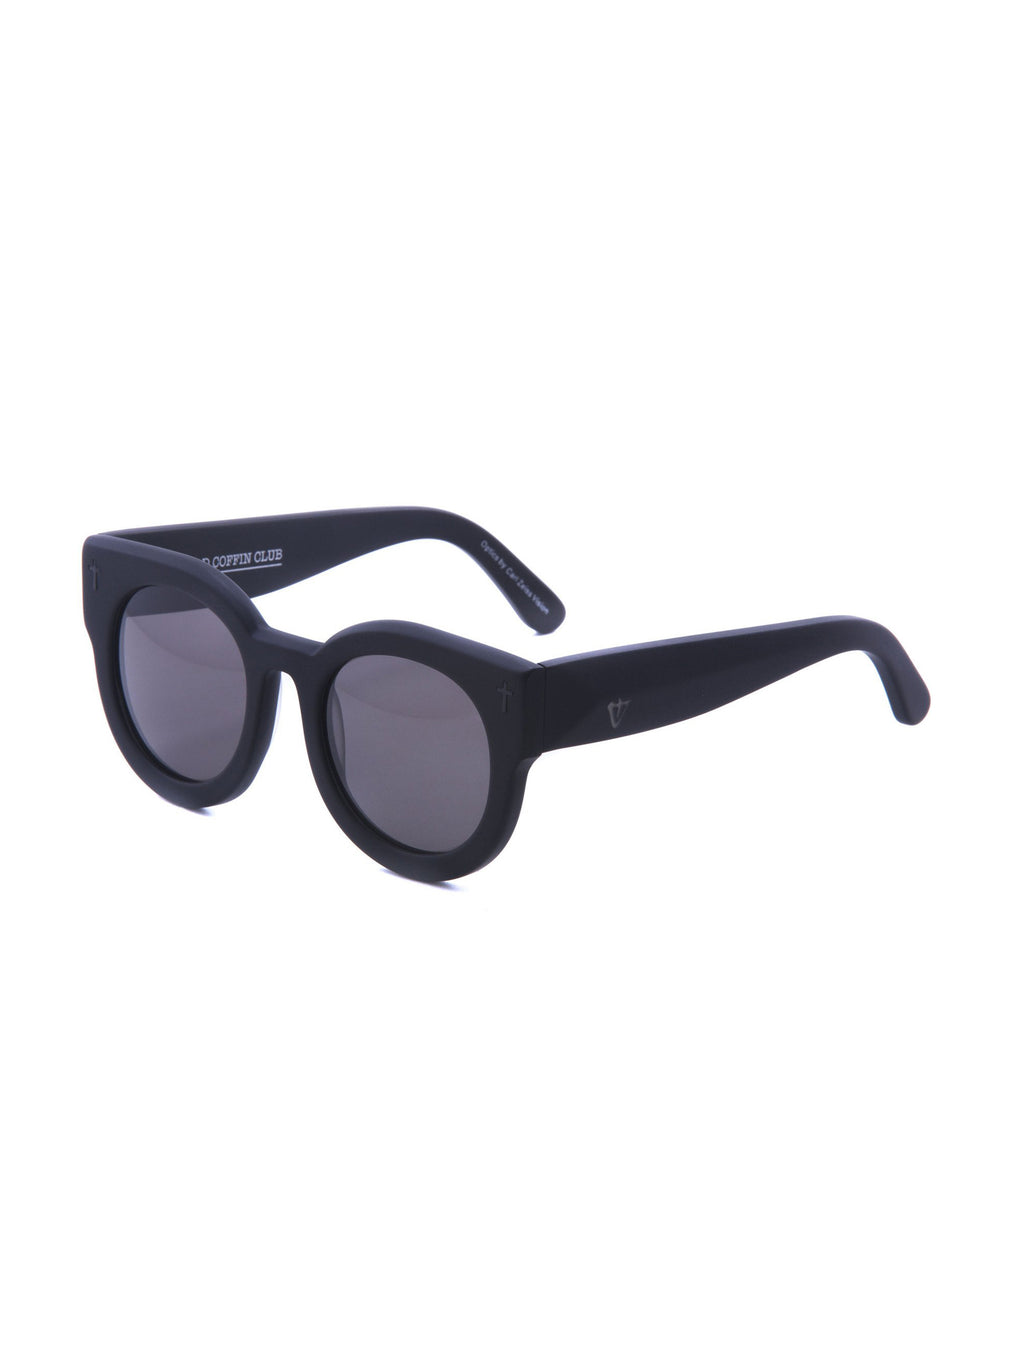 VALLEY EYEWEAR ADCC | Matte Black / Black Lens